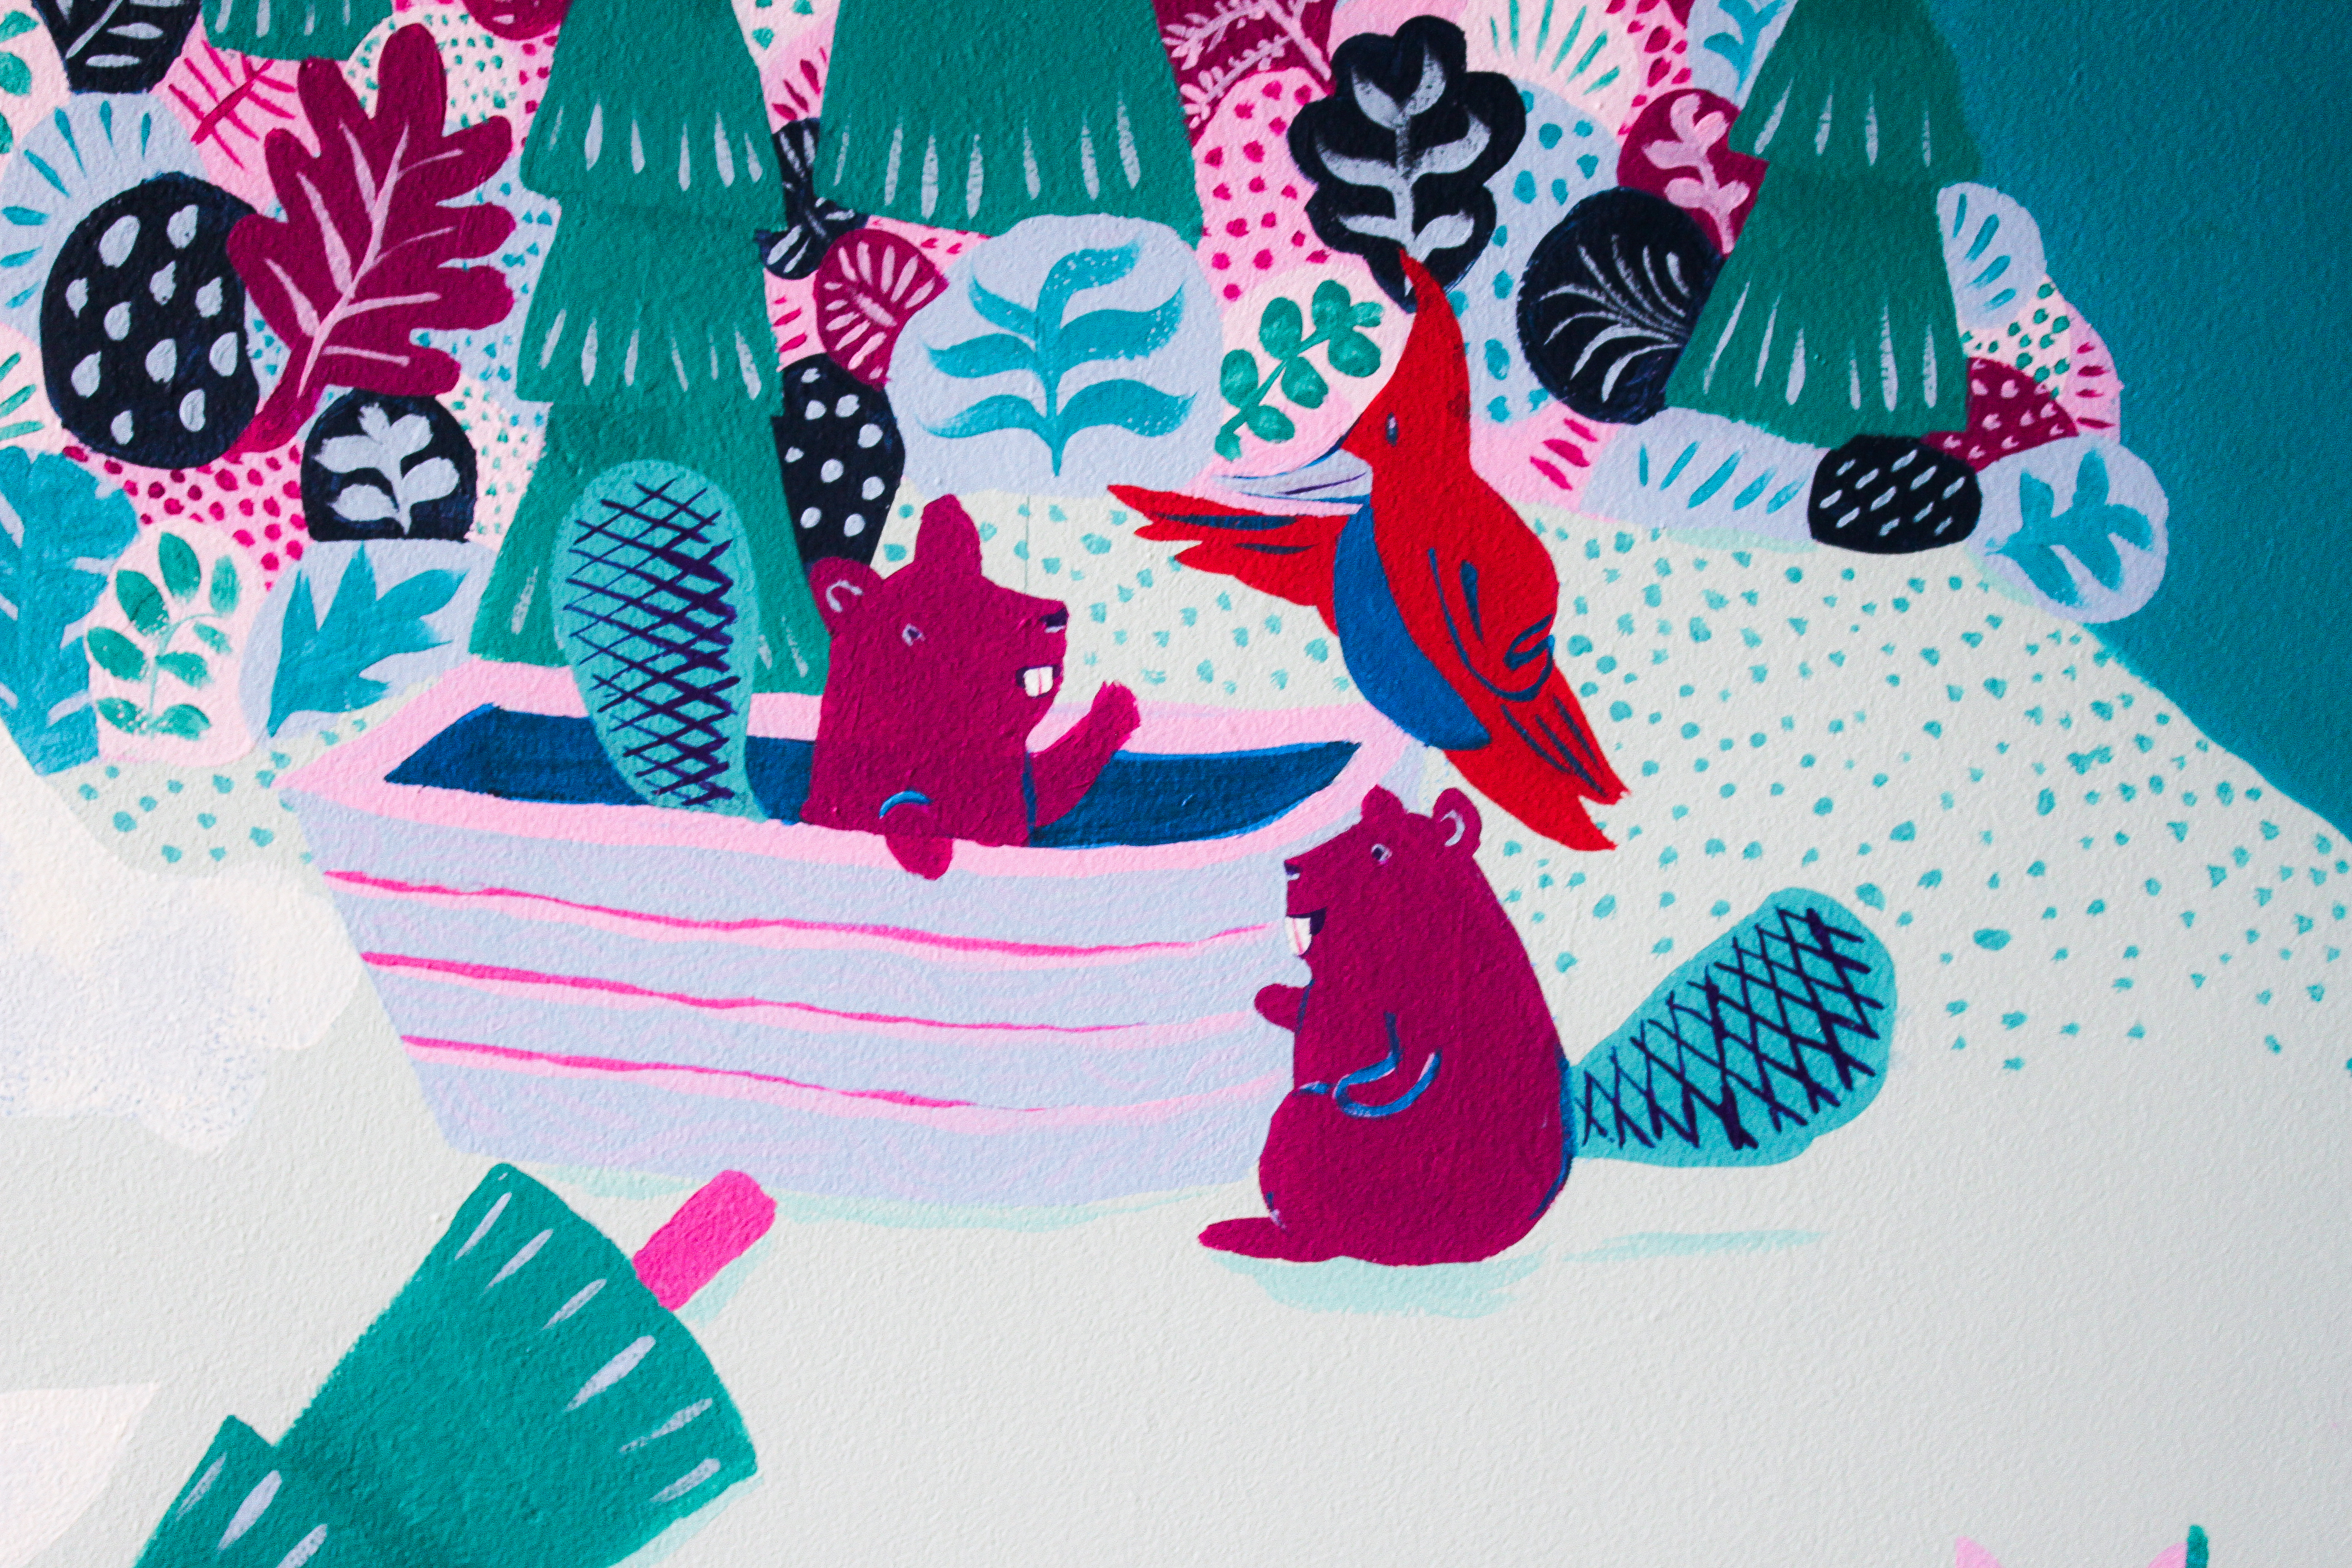 mural detail: a woodpecker instructing beavers how to build a boat